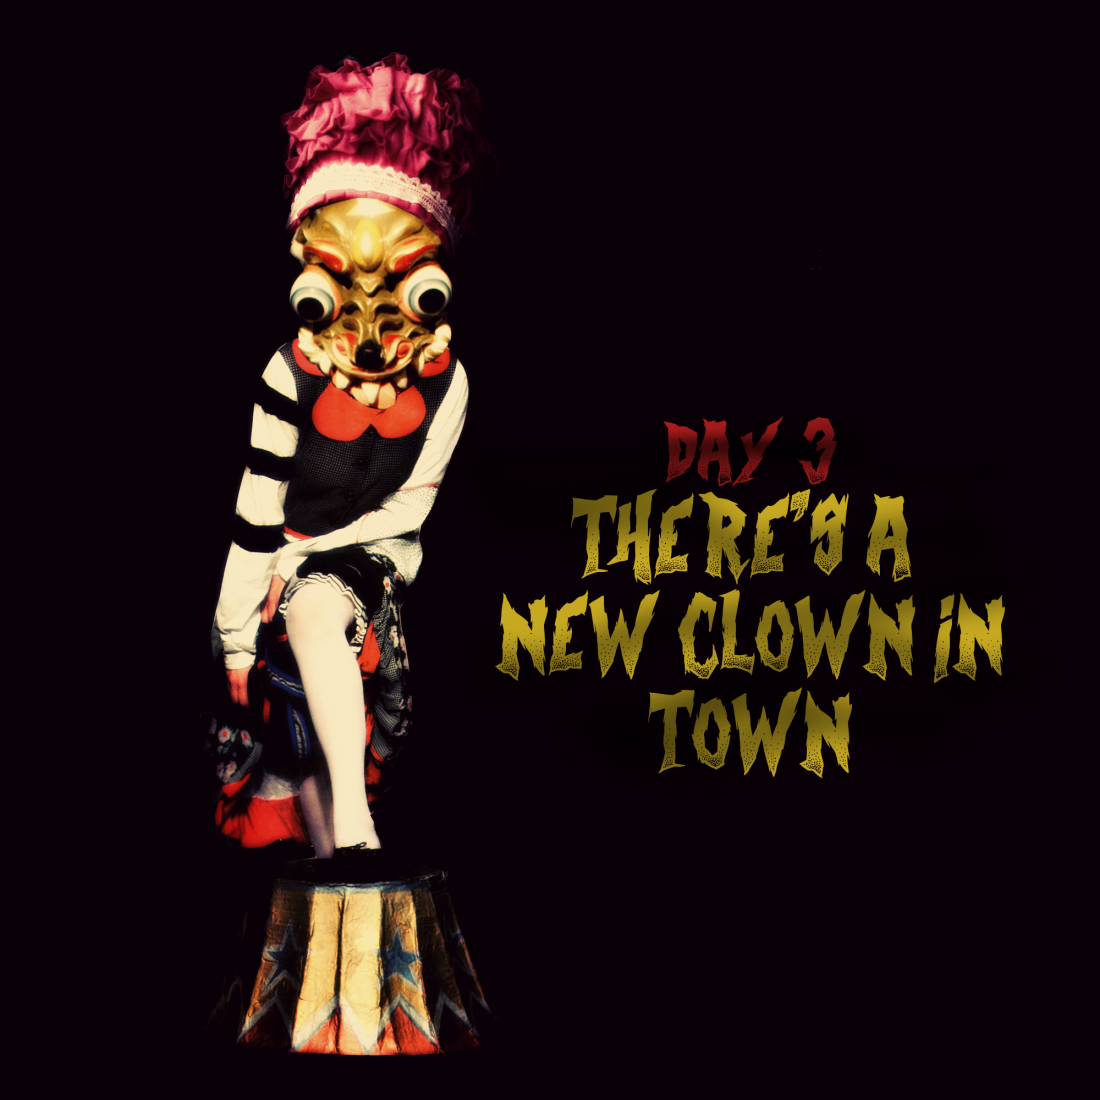 drawlloween-3-theres-a-new-clown-in-town